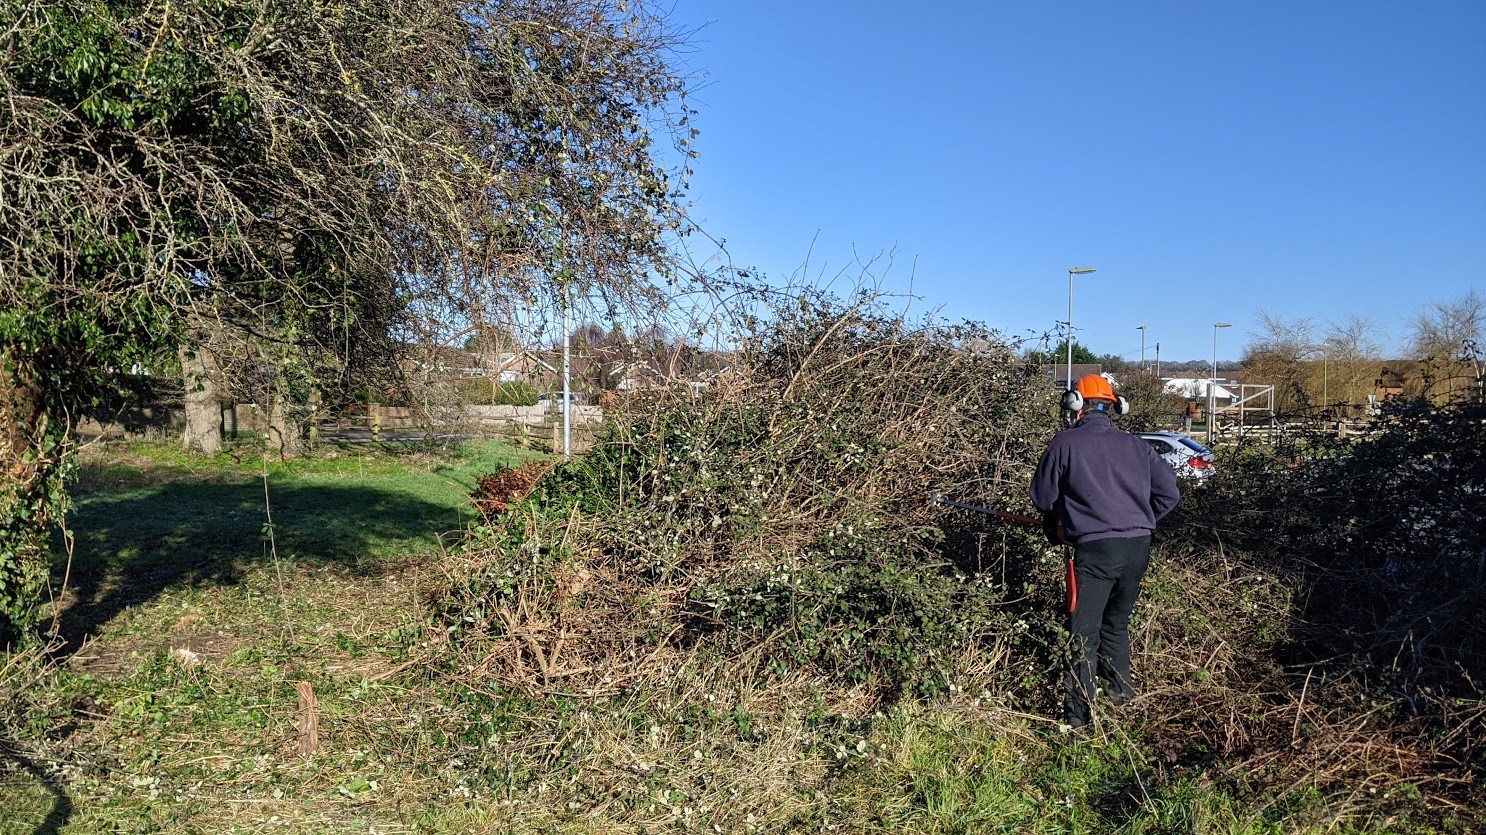 Village community area cleared by volunteers